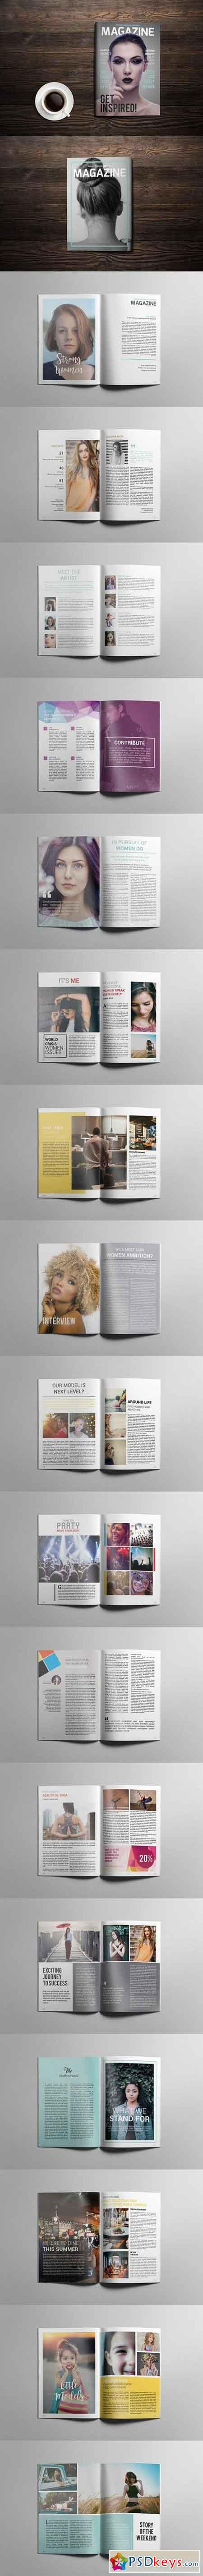 Indesign Magazine Template 1697038 » Free Download Photoshop Vector ...